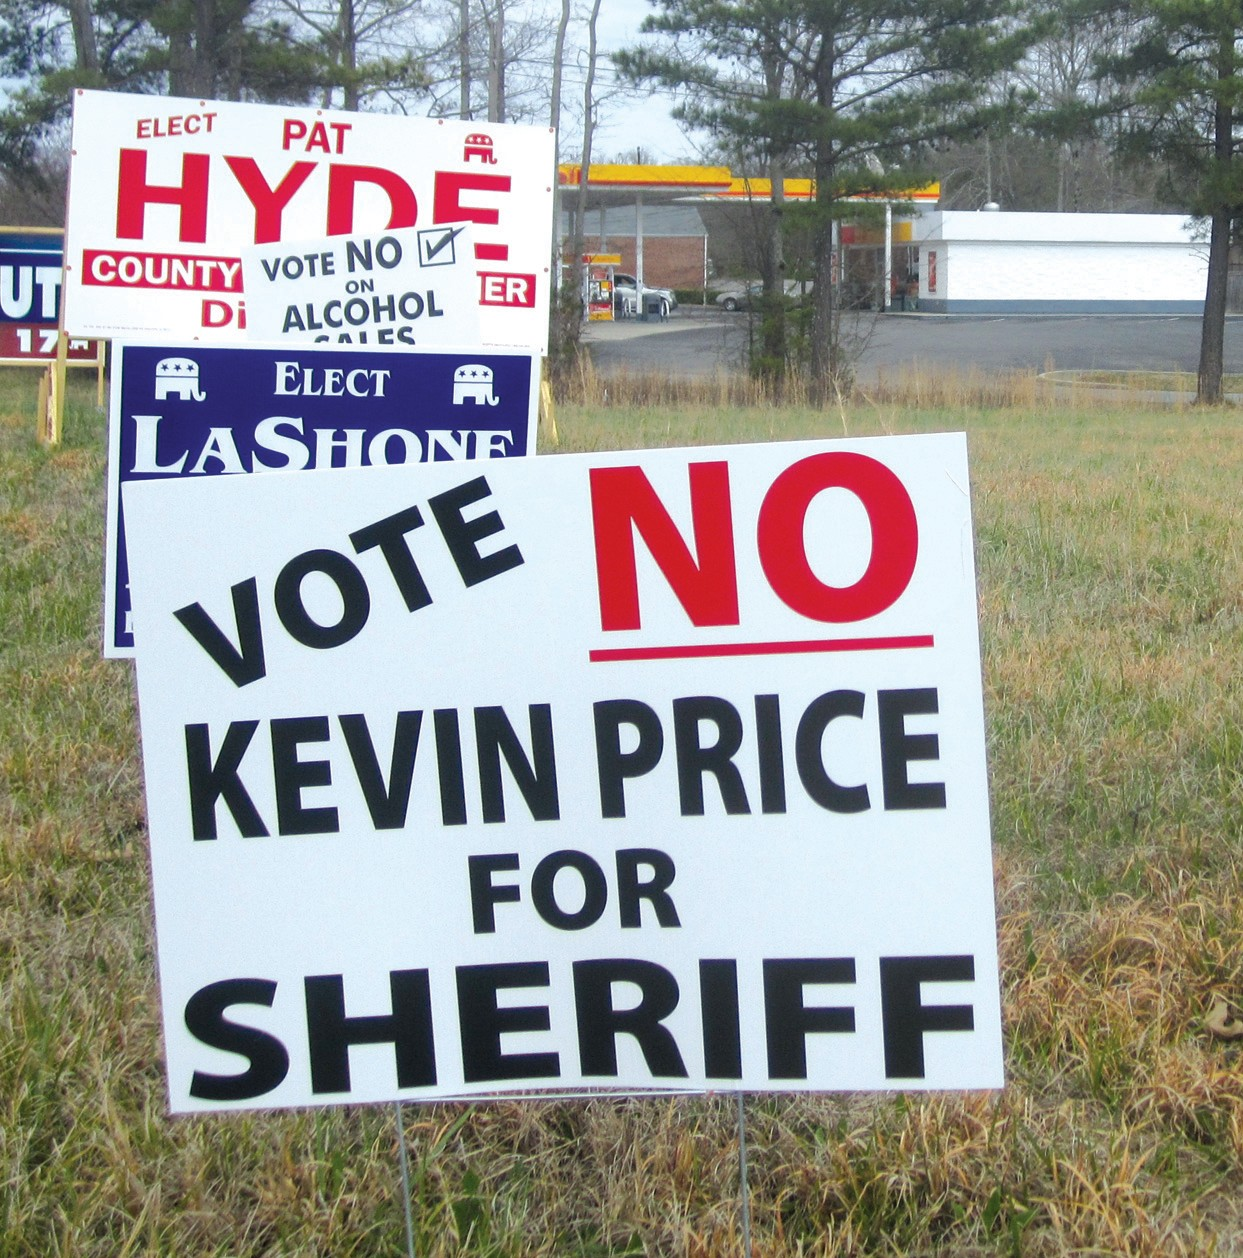 This sign, posted on Ala 75 across from Jack's Restaurant in Oneonta, is typical of several other locations where it was posted near a Kevin Price for Sheriff campaign sign.